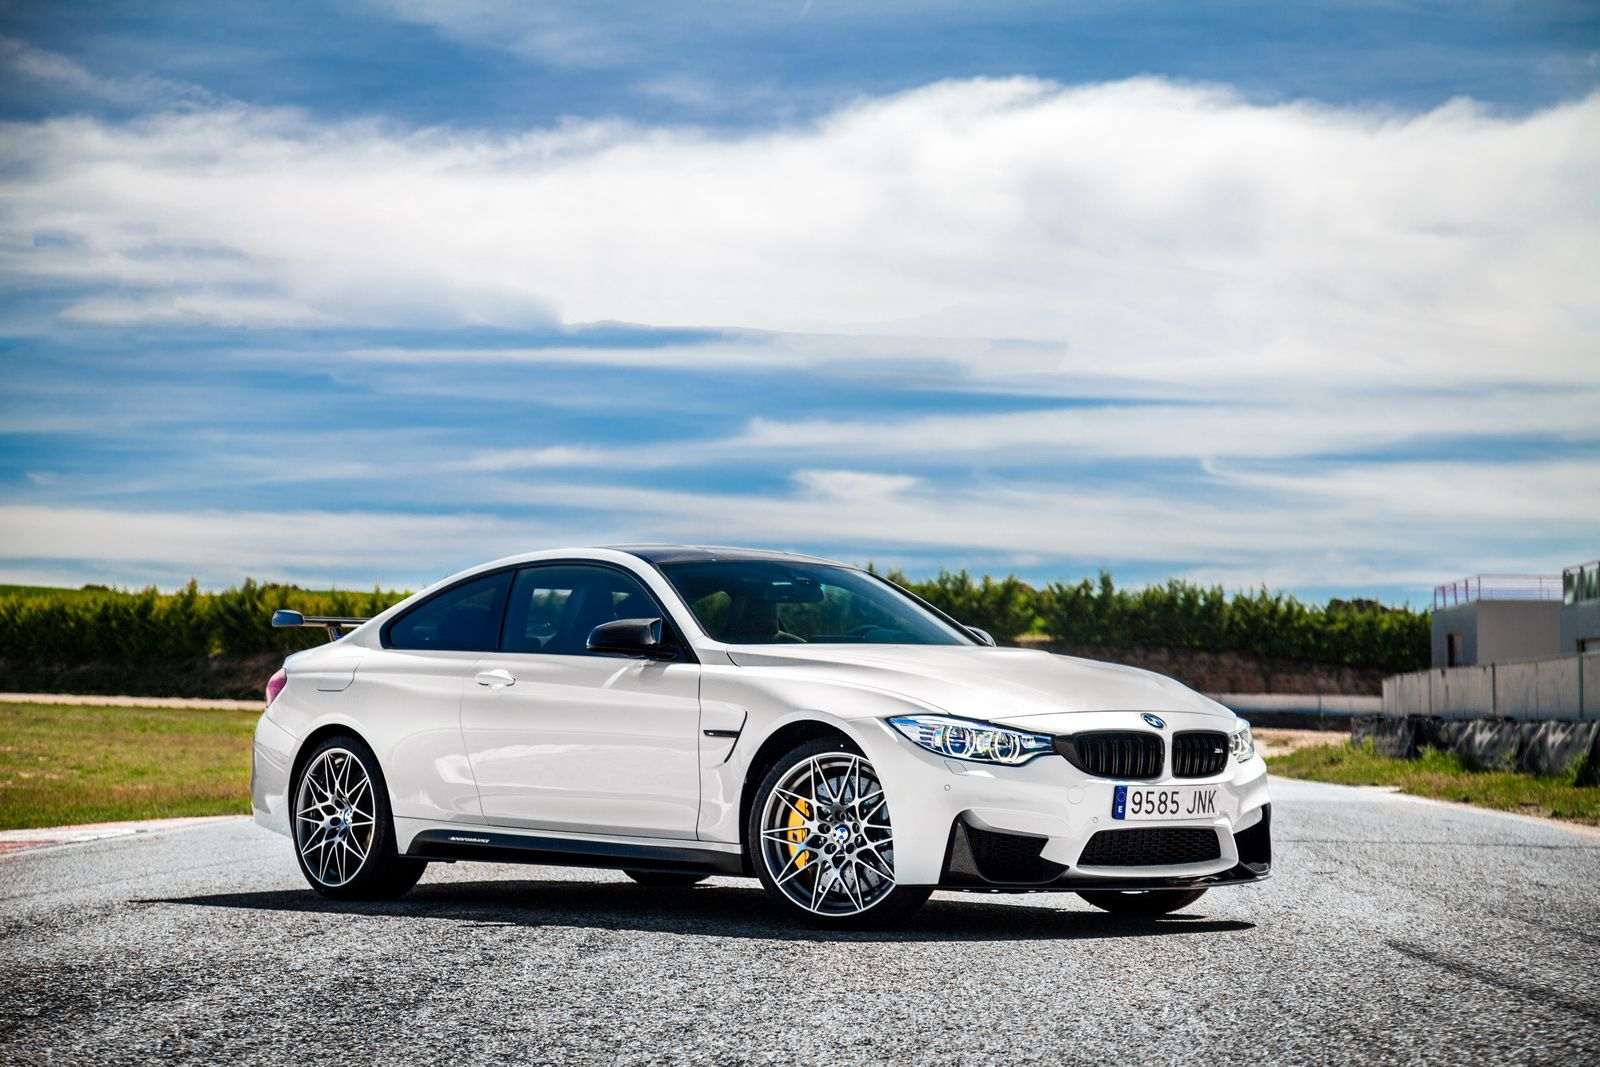 Bmw S New M4 Cs Limited Edition Is Tempting But Pricey 61 Images